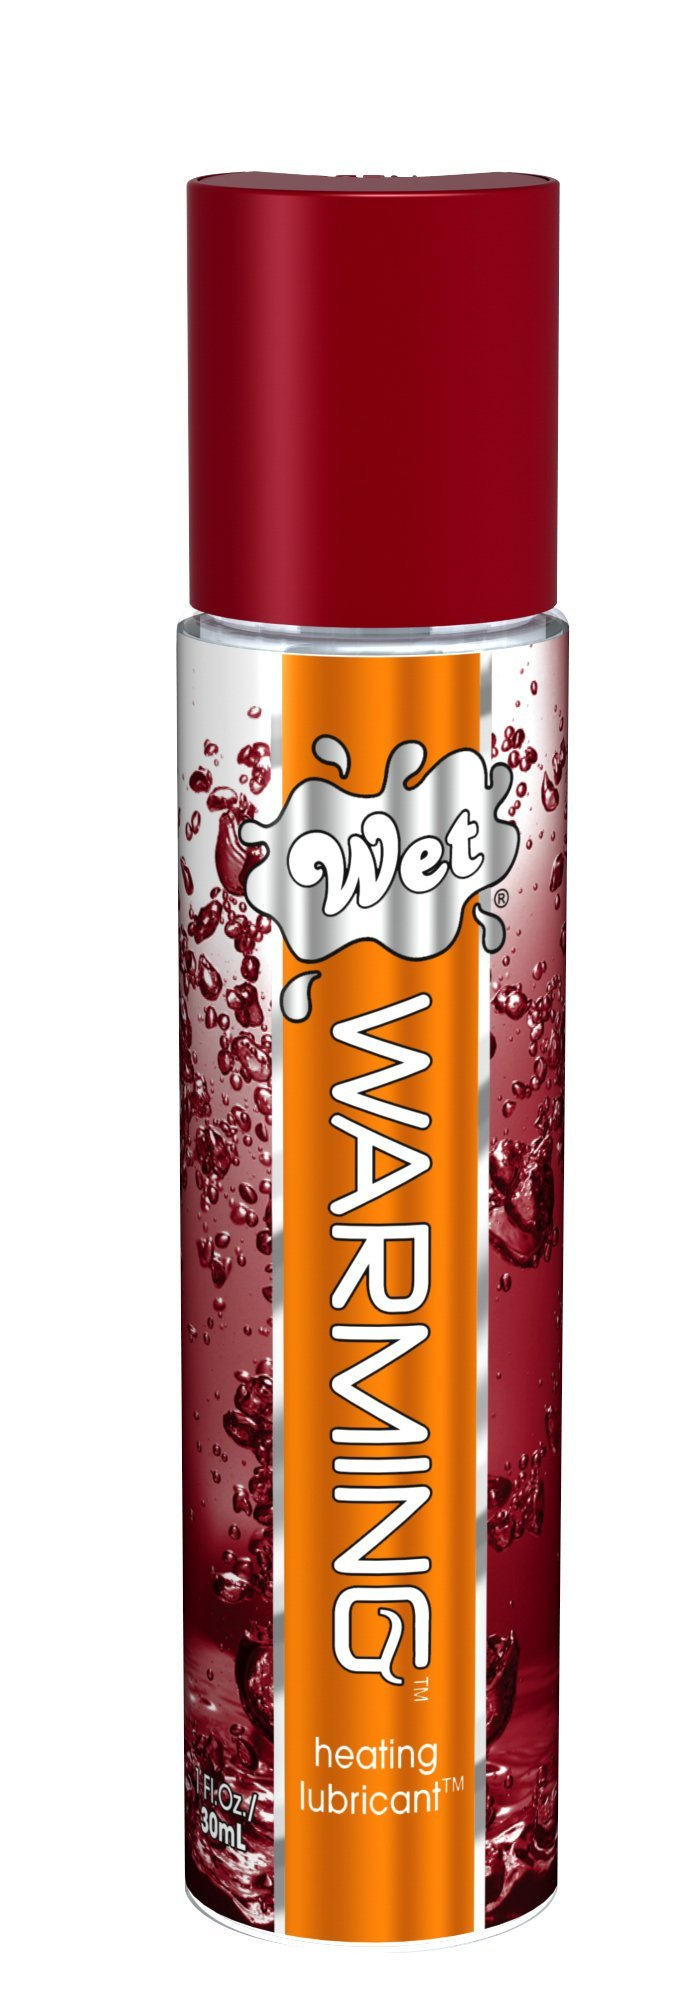 Wet - Warming Heating Lubricant 30ml (Red) Warming Lube Singapore